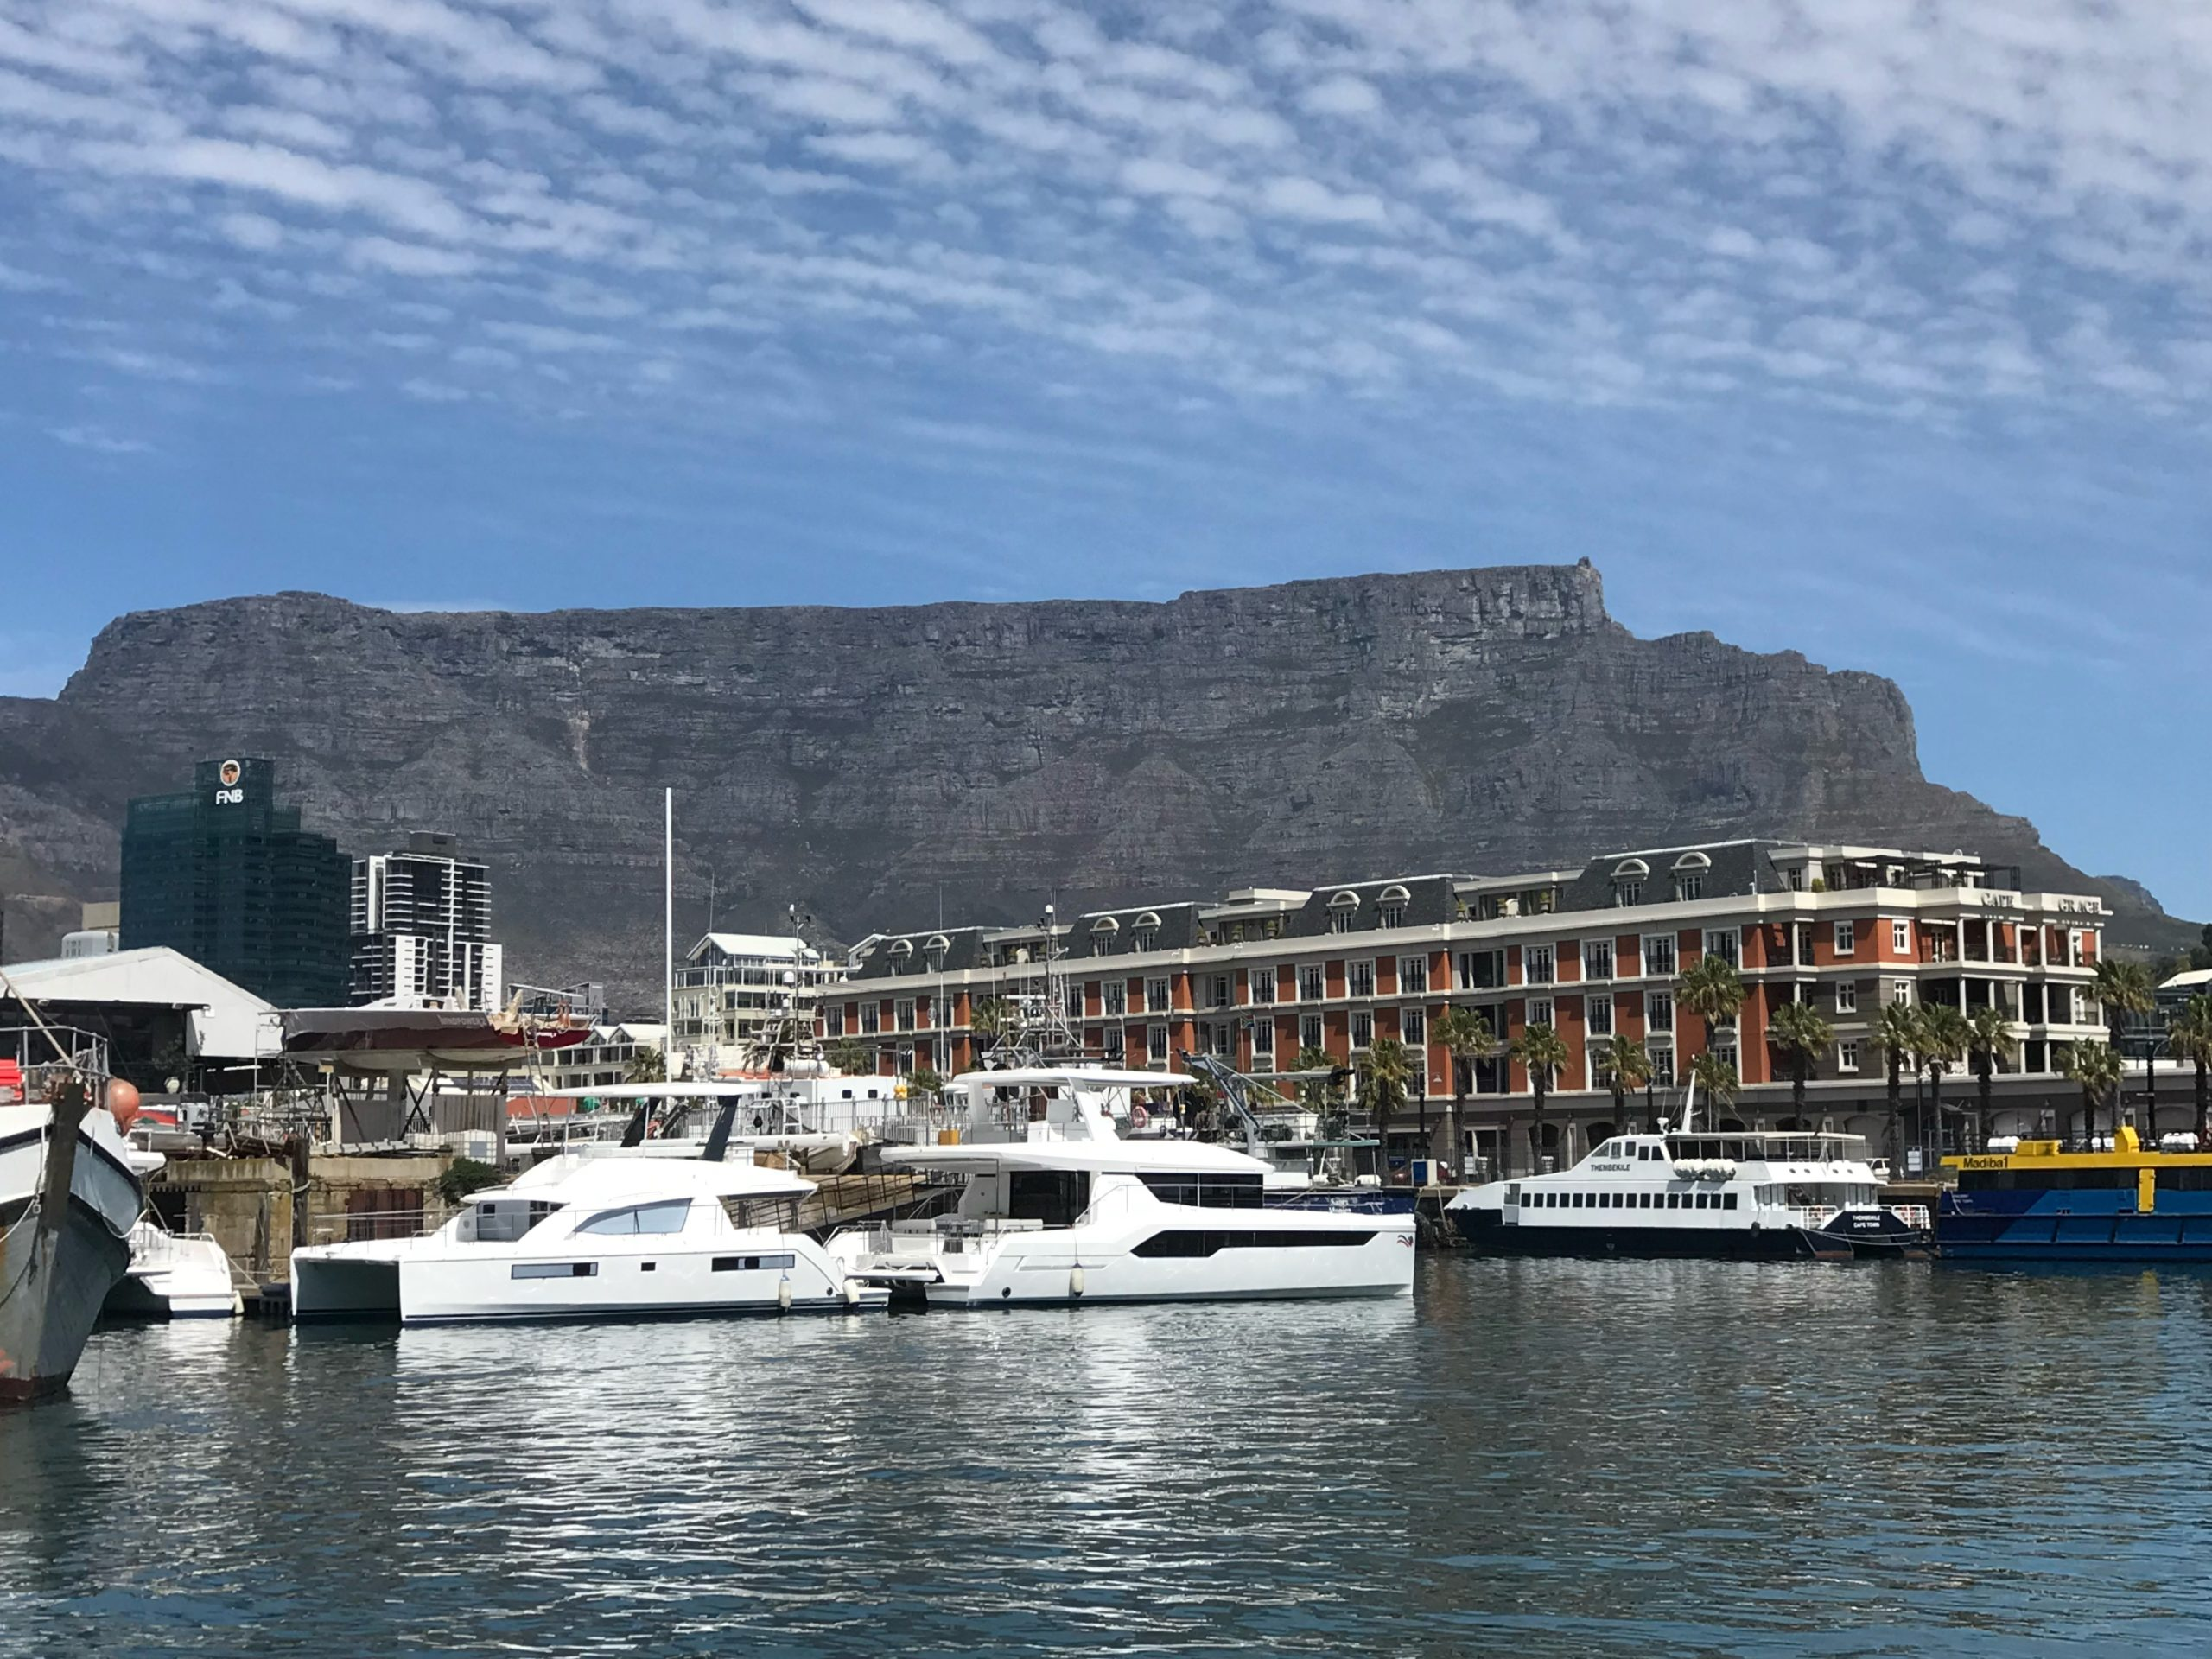 LETTER TO THE EDITOR: What have we done for you lately? The City of Cape Town is far from perfect, but the DA's delivery record is outstanding